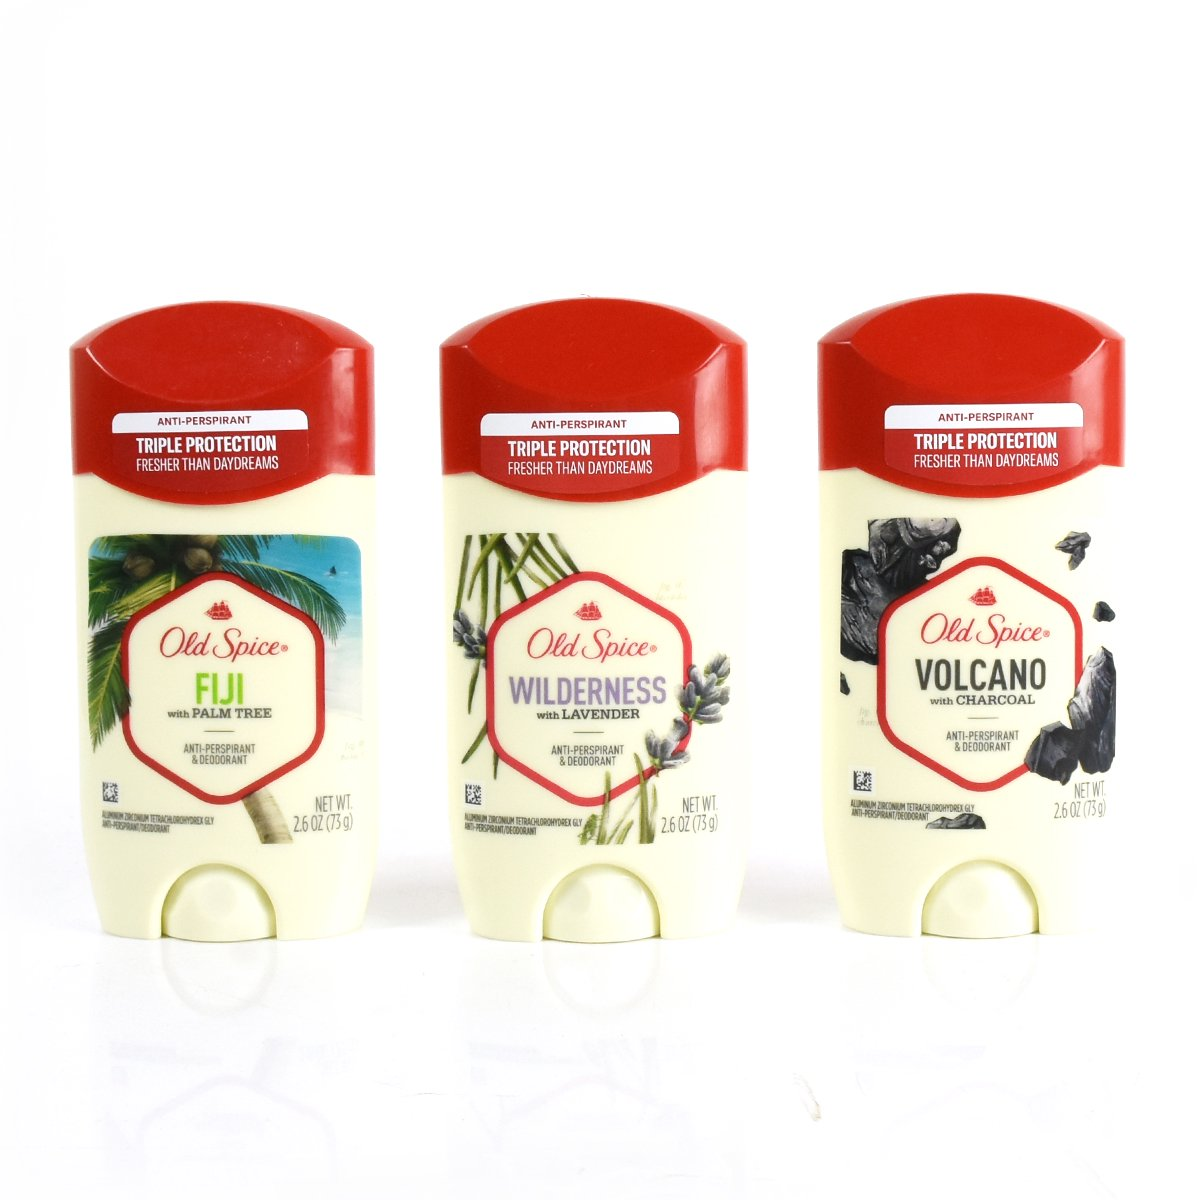 【OLD SPICE】Deodorant Stick